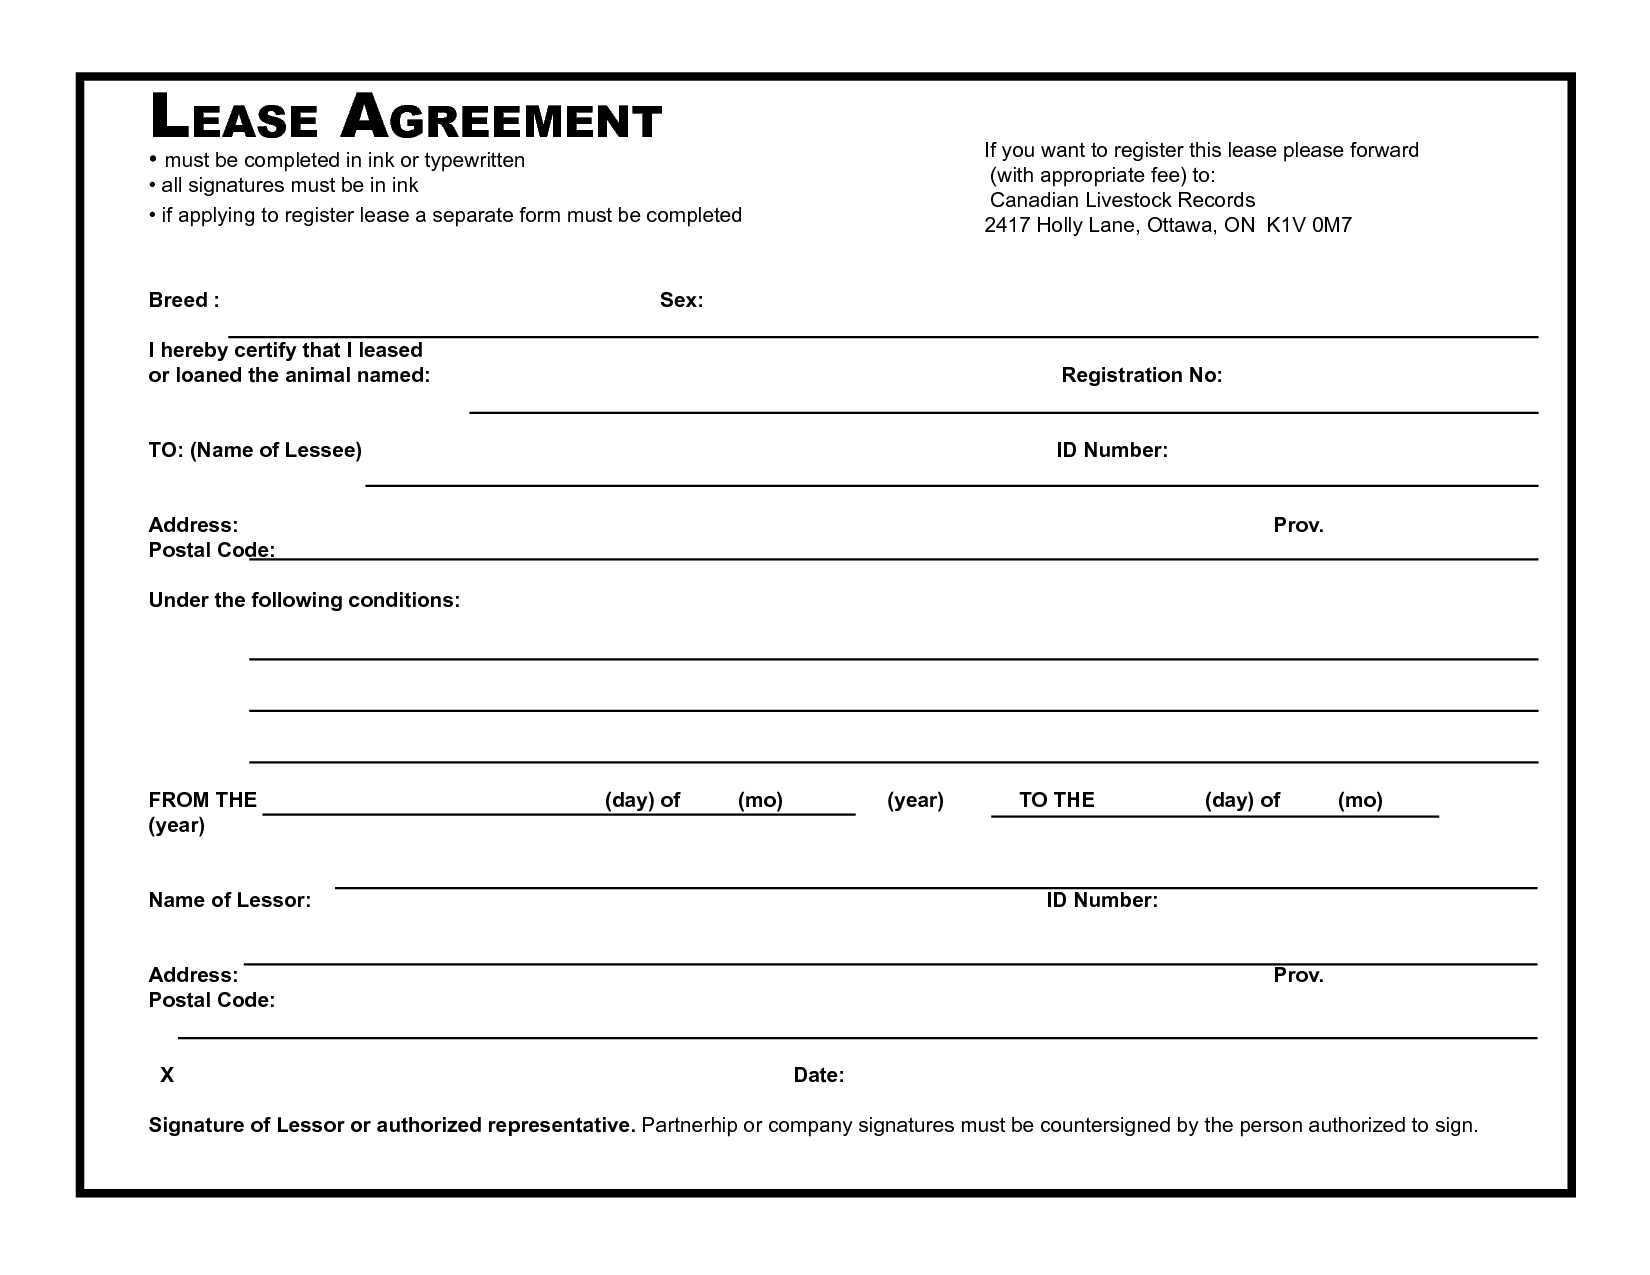 Novated Lease Calculator Spreadsheet For Example Of Novated Lease Calculator Spreadsheetlease Agreement